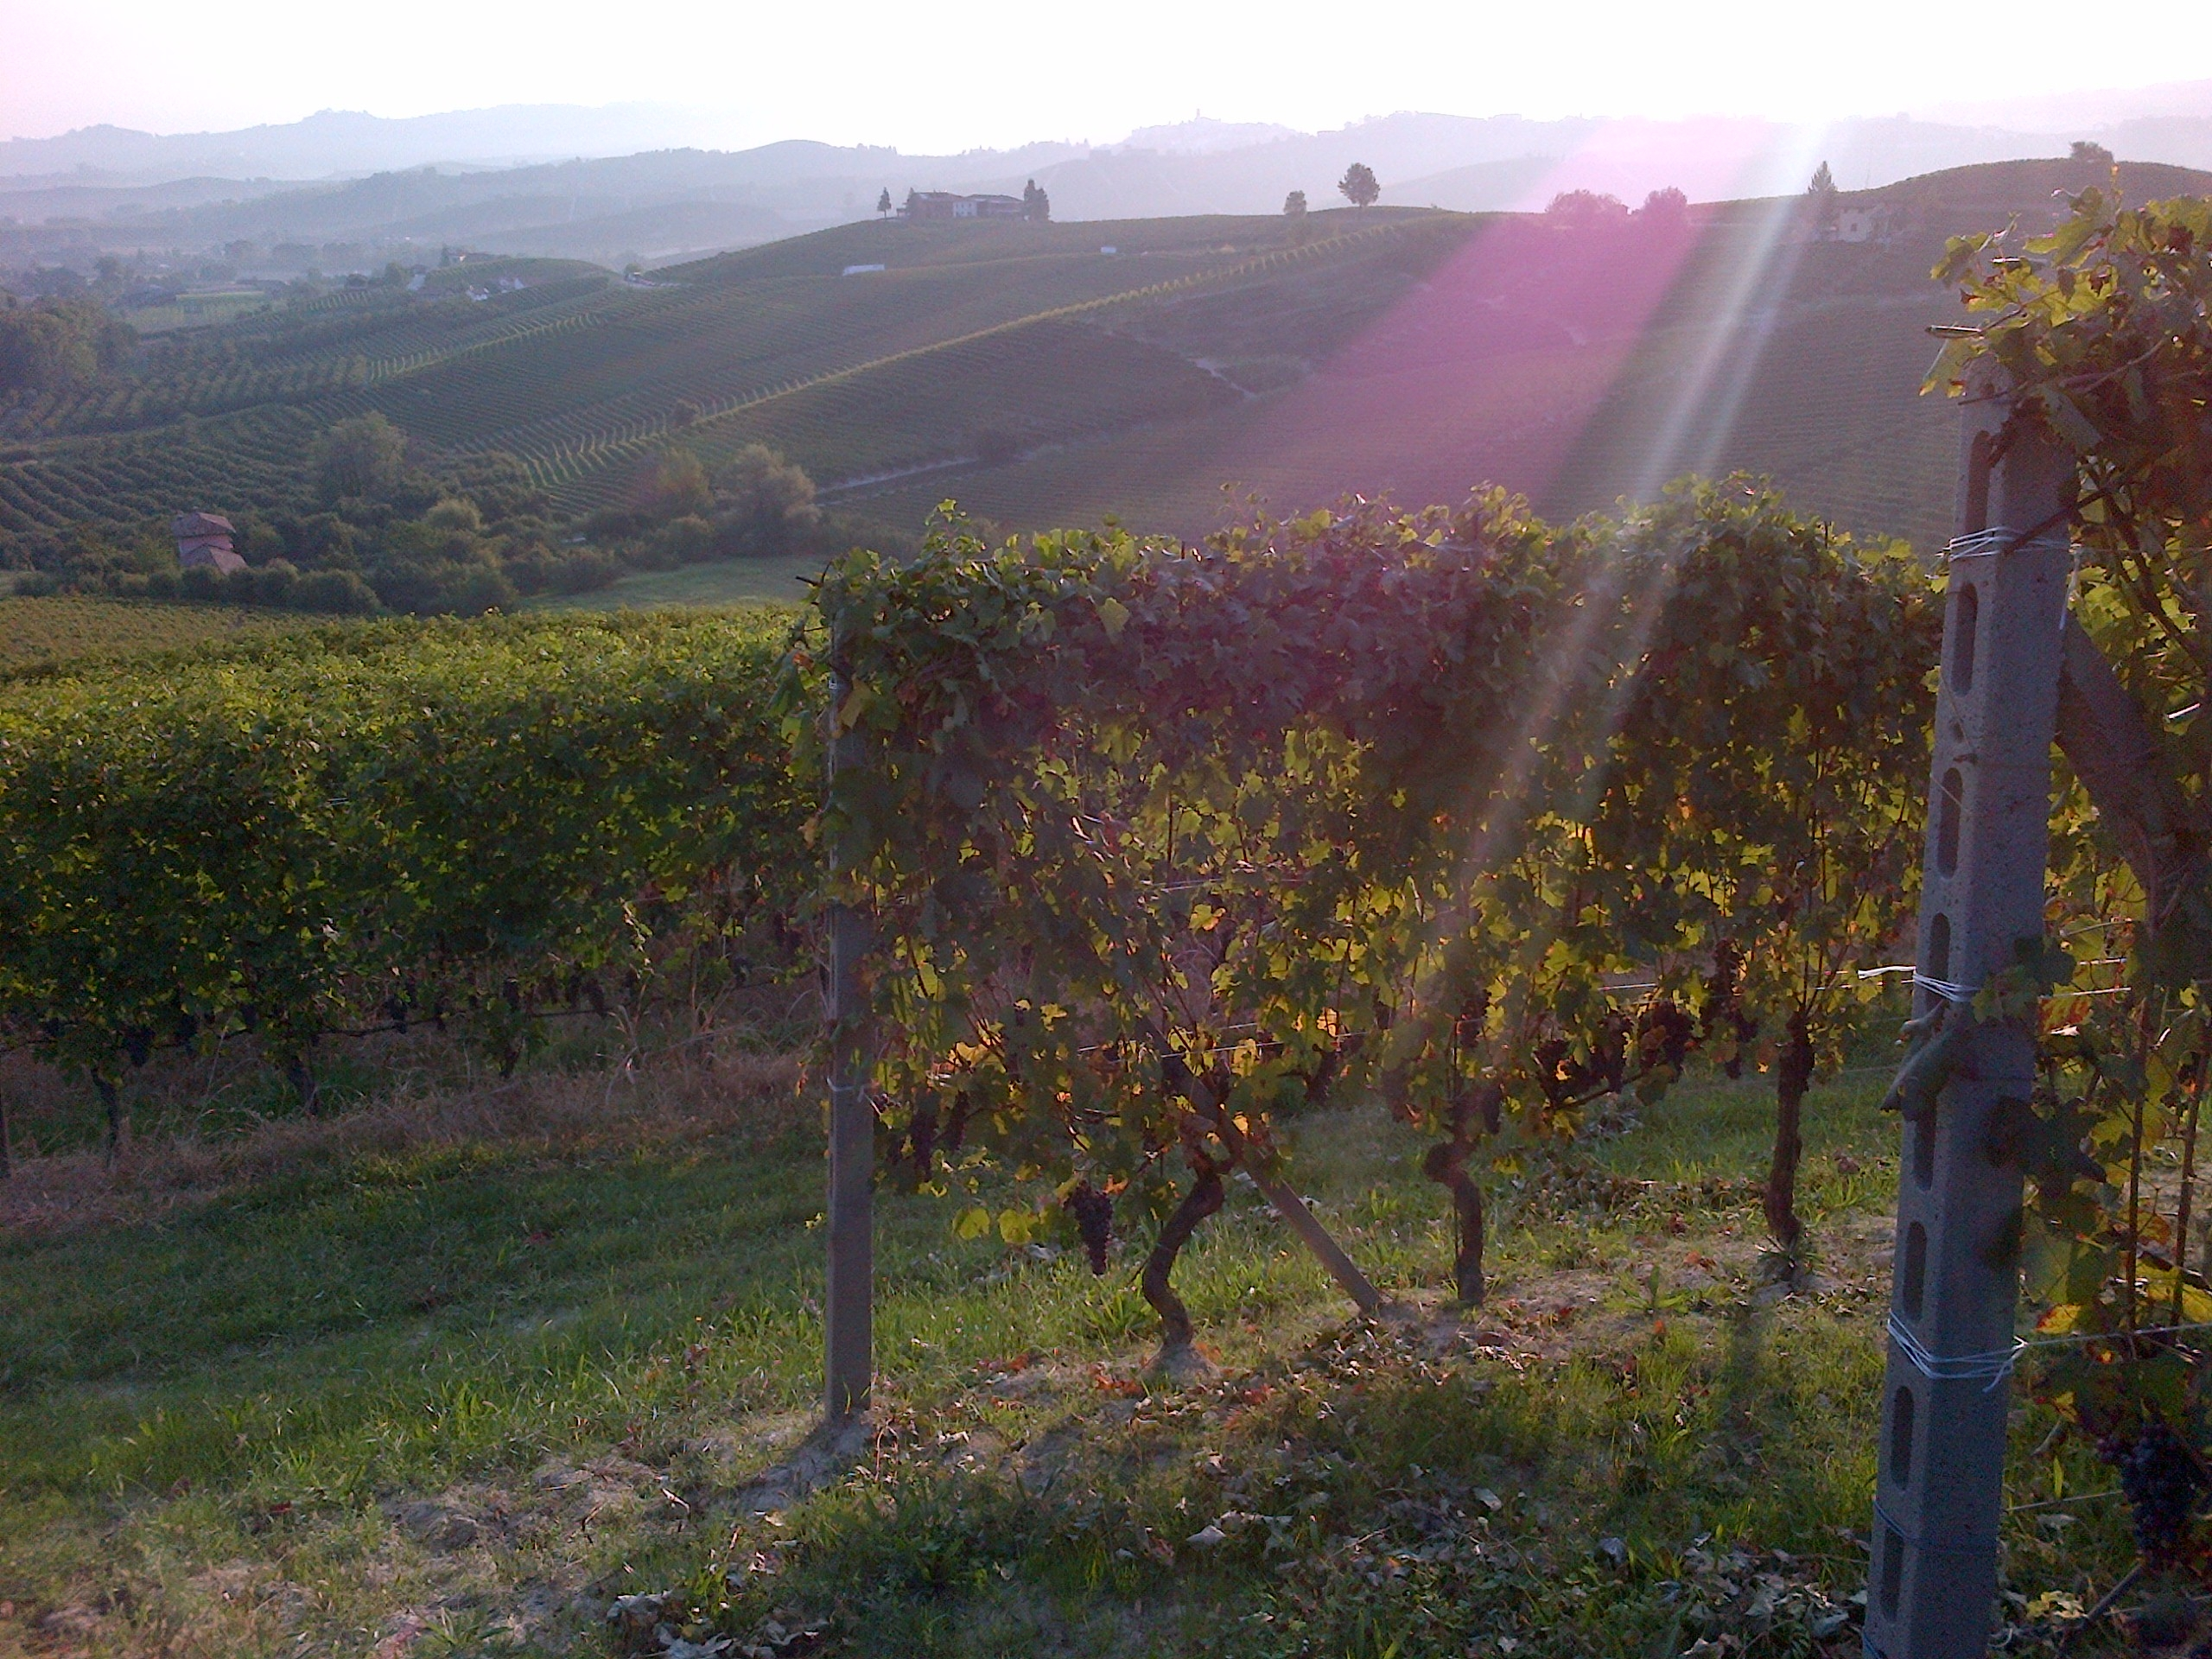 Vineyards in Barolo